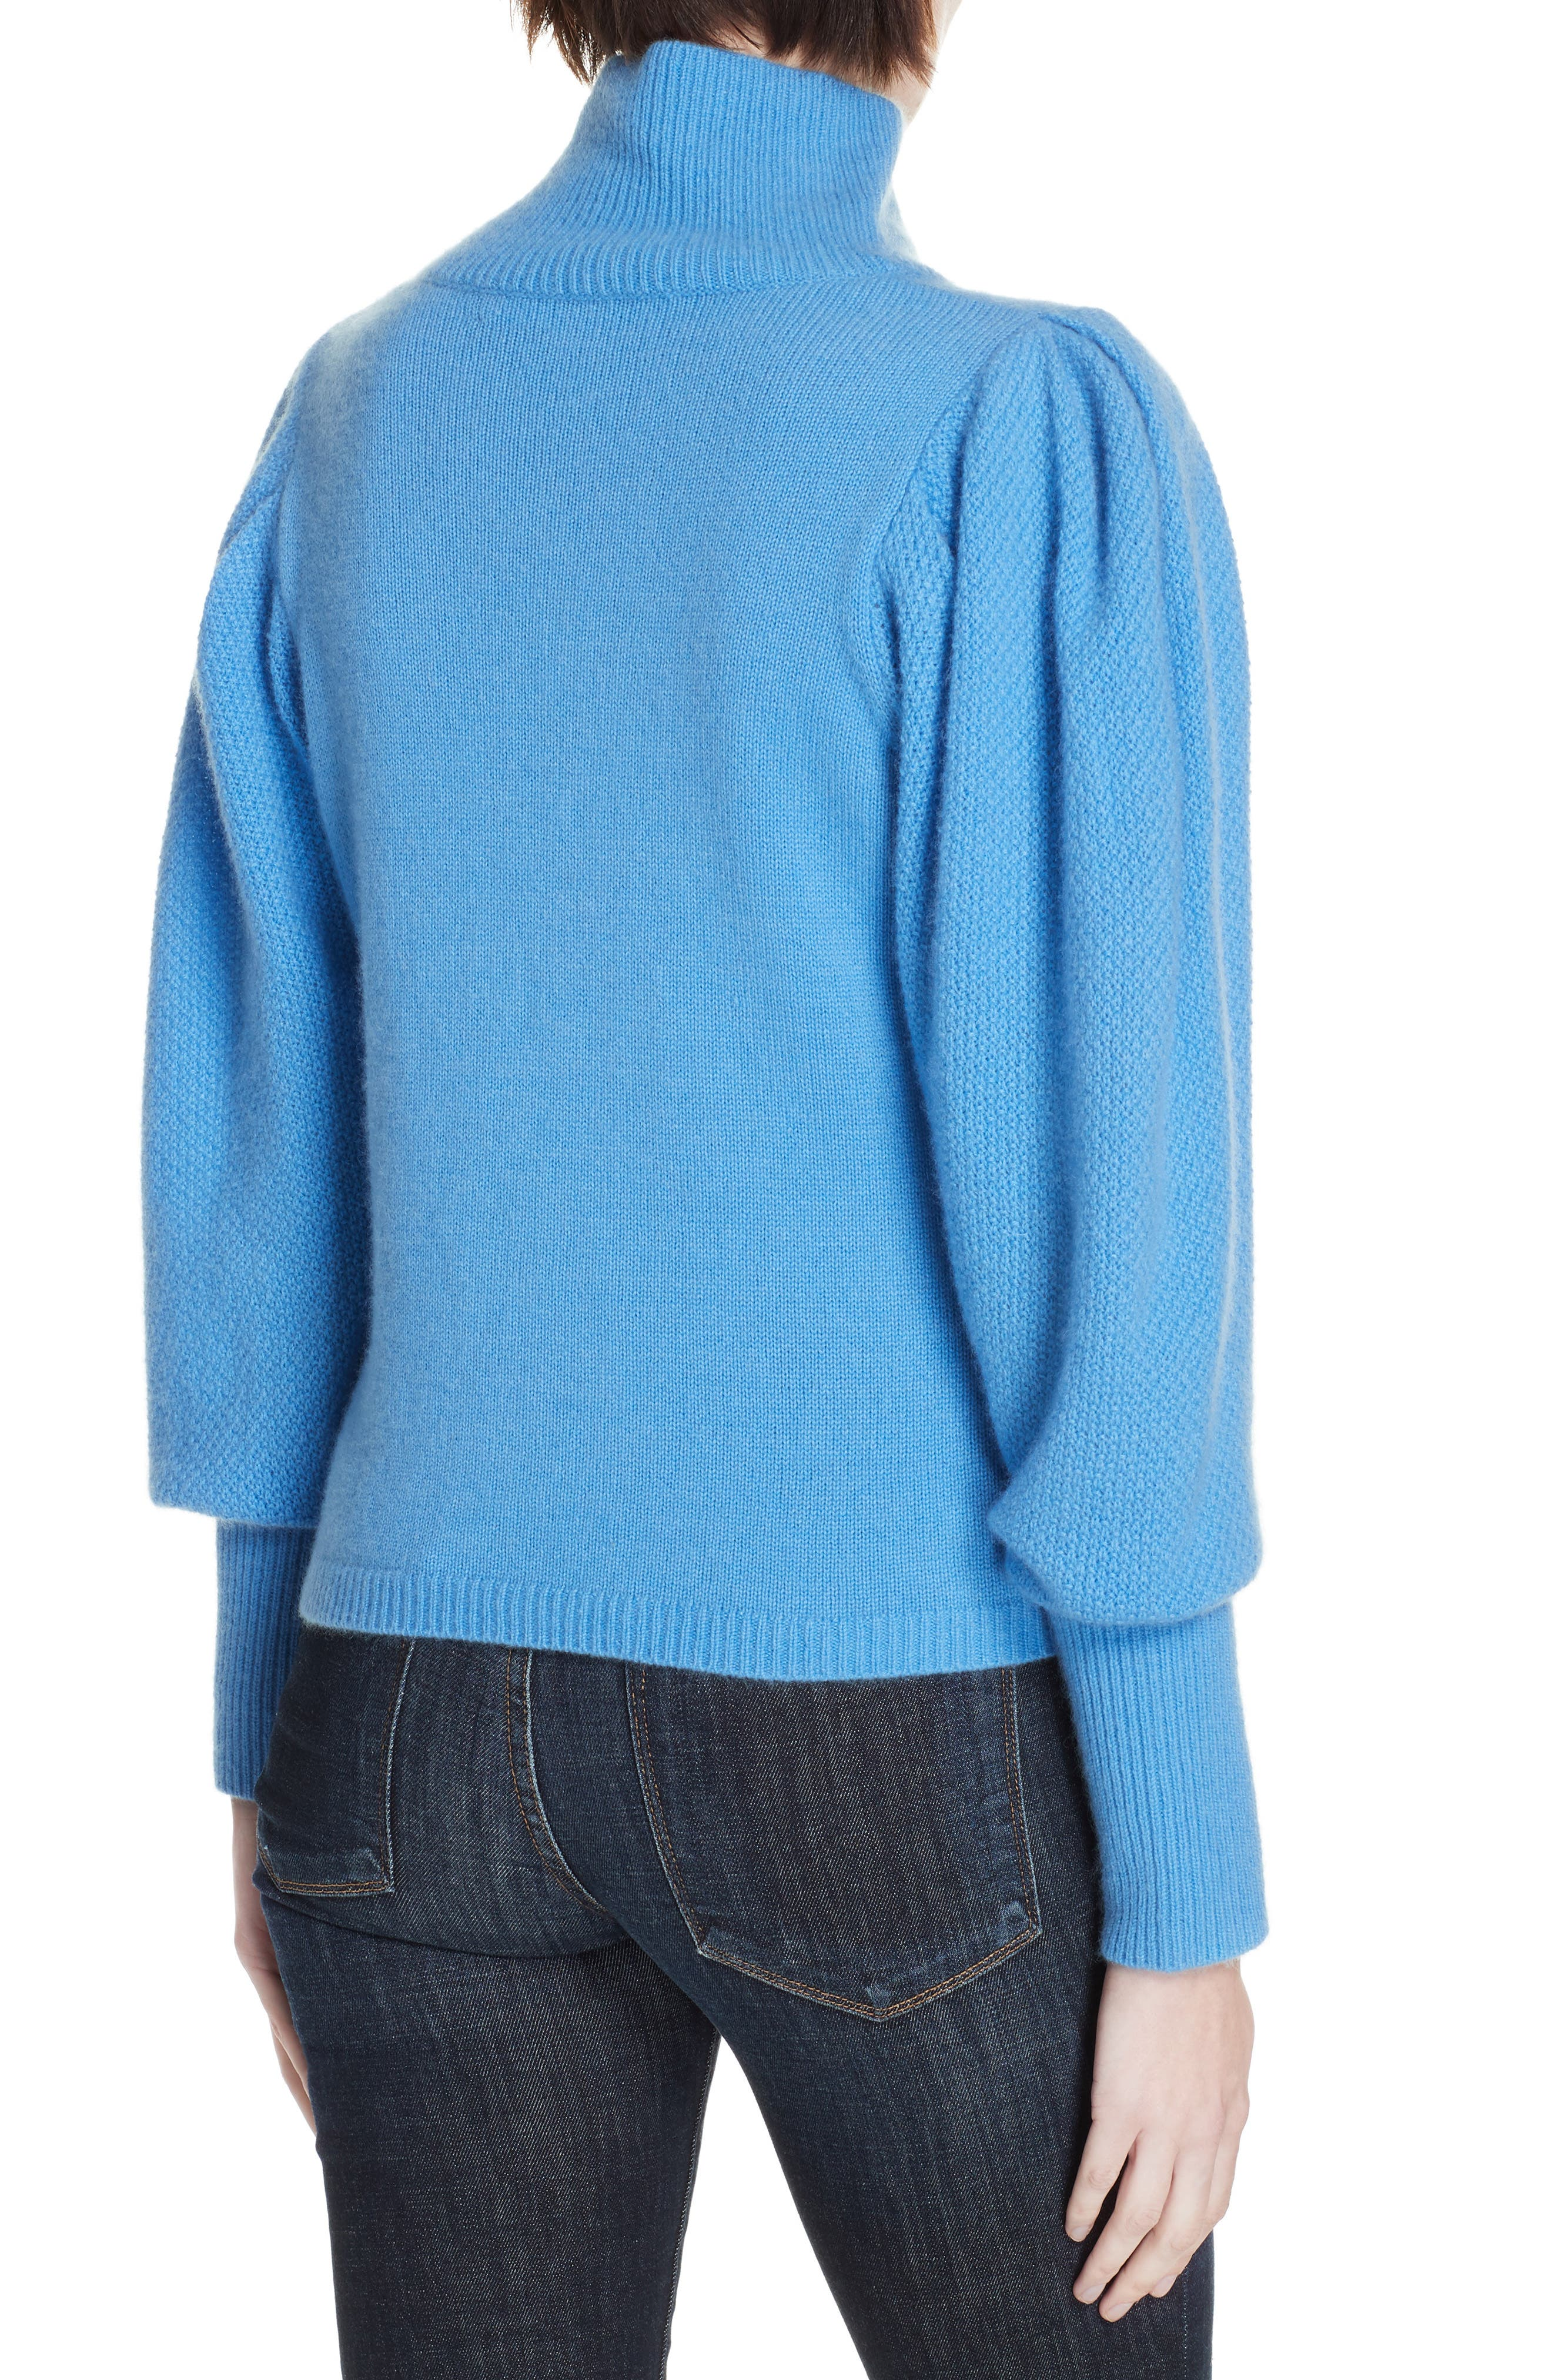 Beatrice Wool & Cashmere Sweater,                             Alternate thumbnail 2, color,                             HYDRANGEA